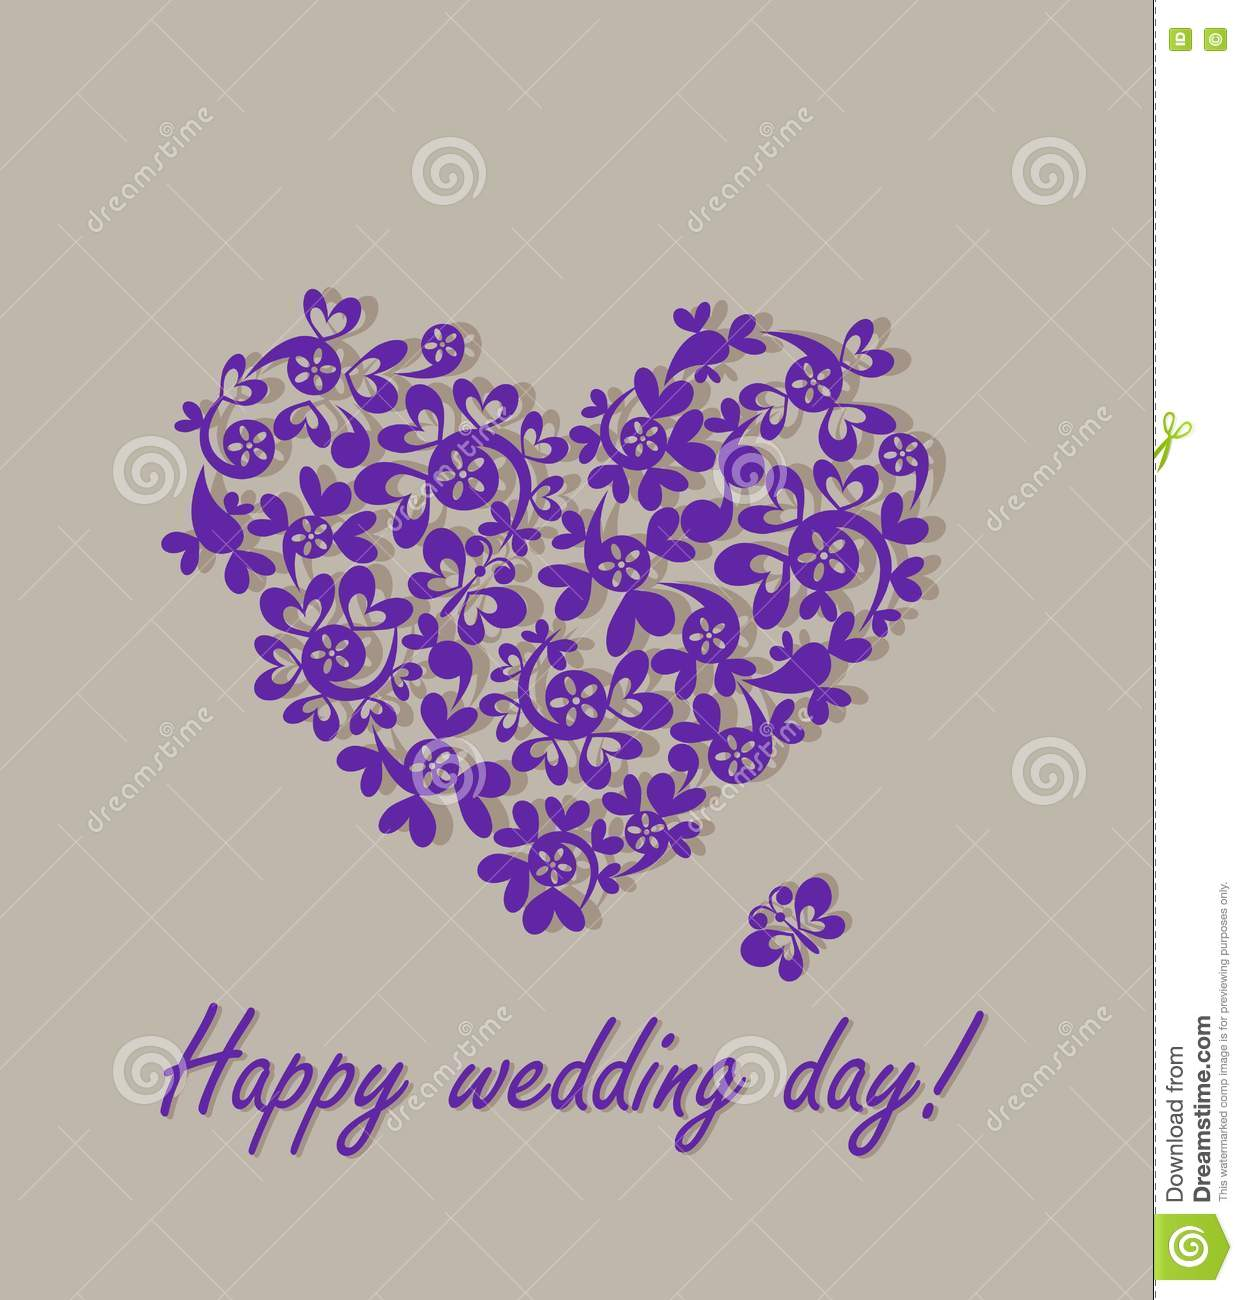 Happy Wedding Day! Greeting Card With Paper Heart Stock